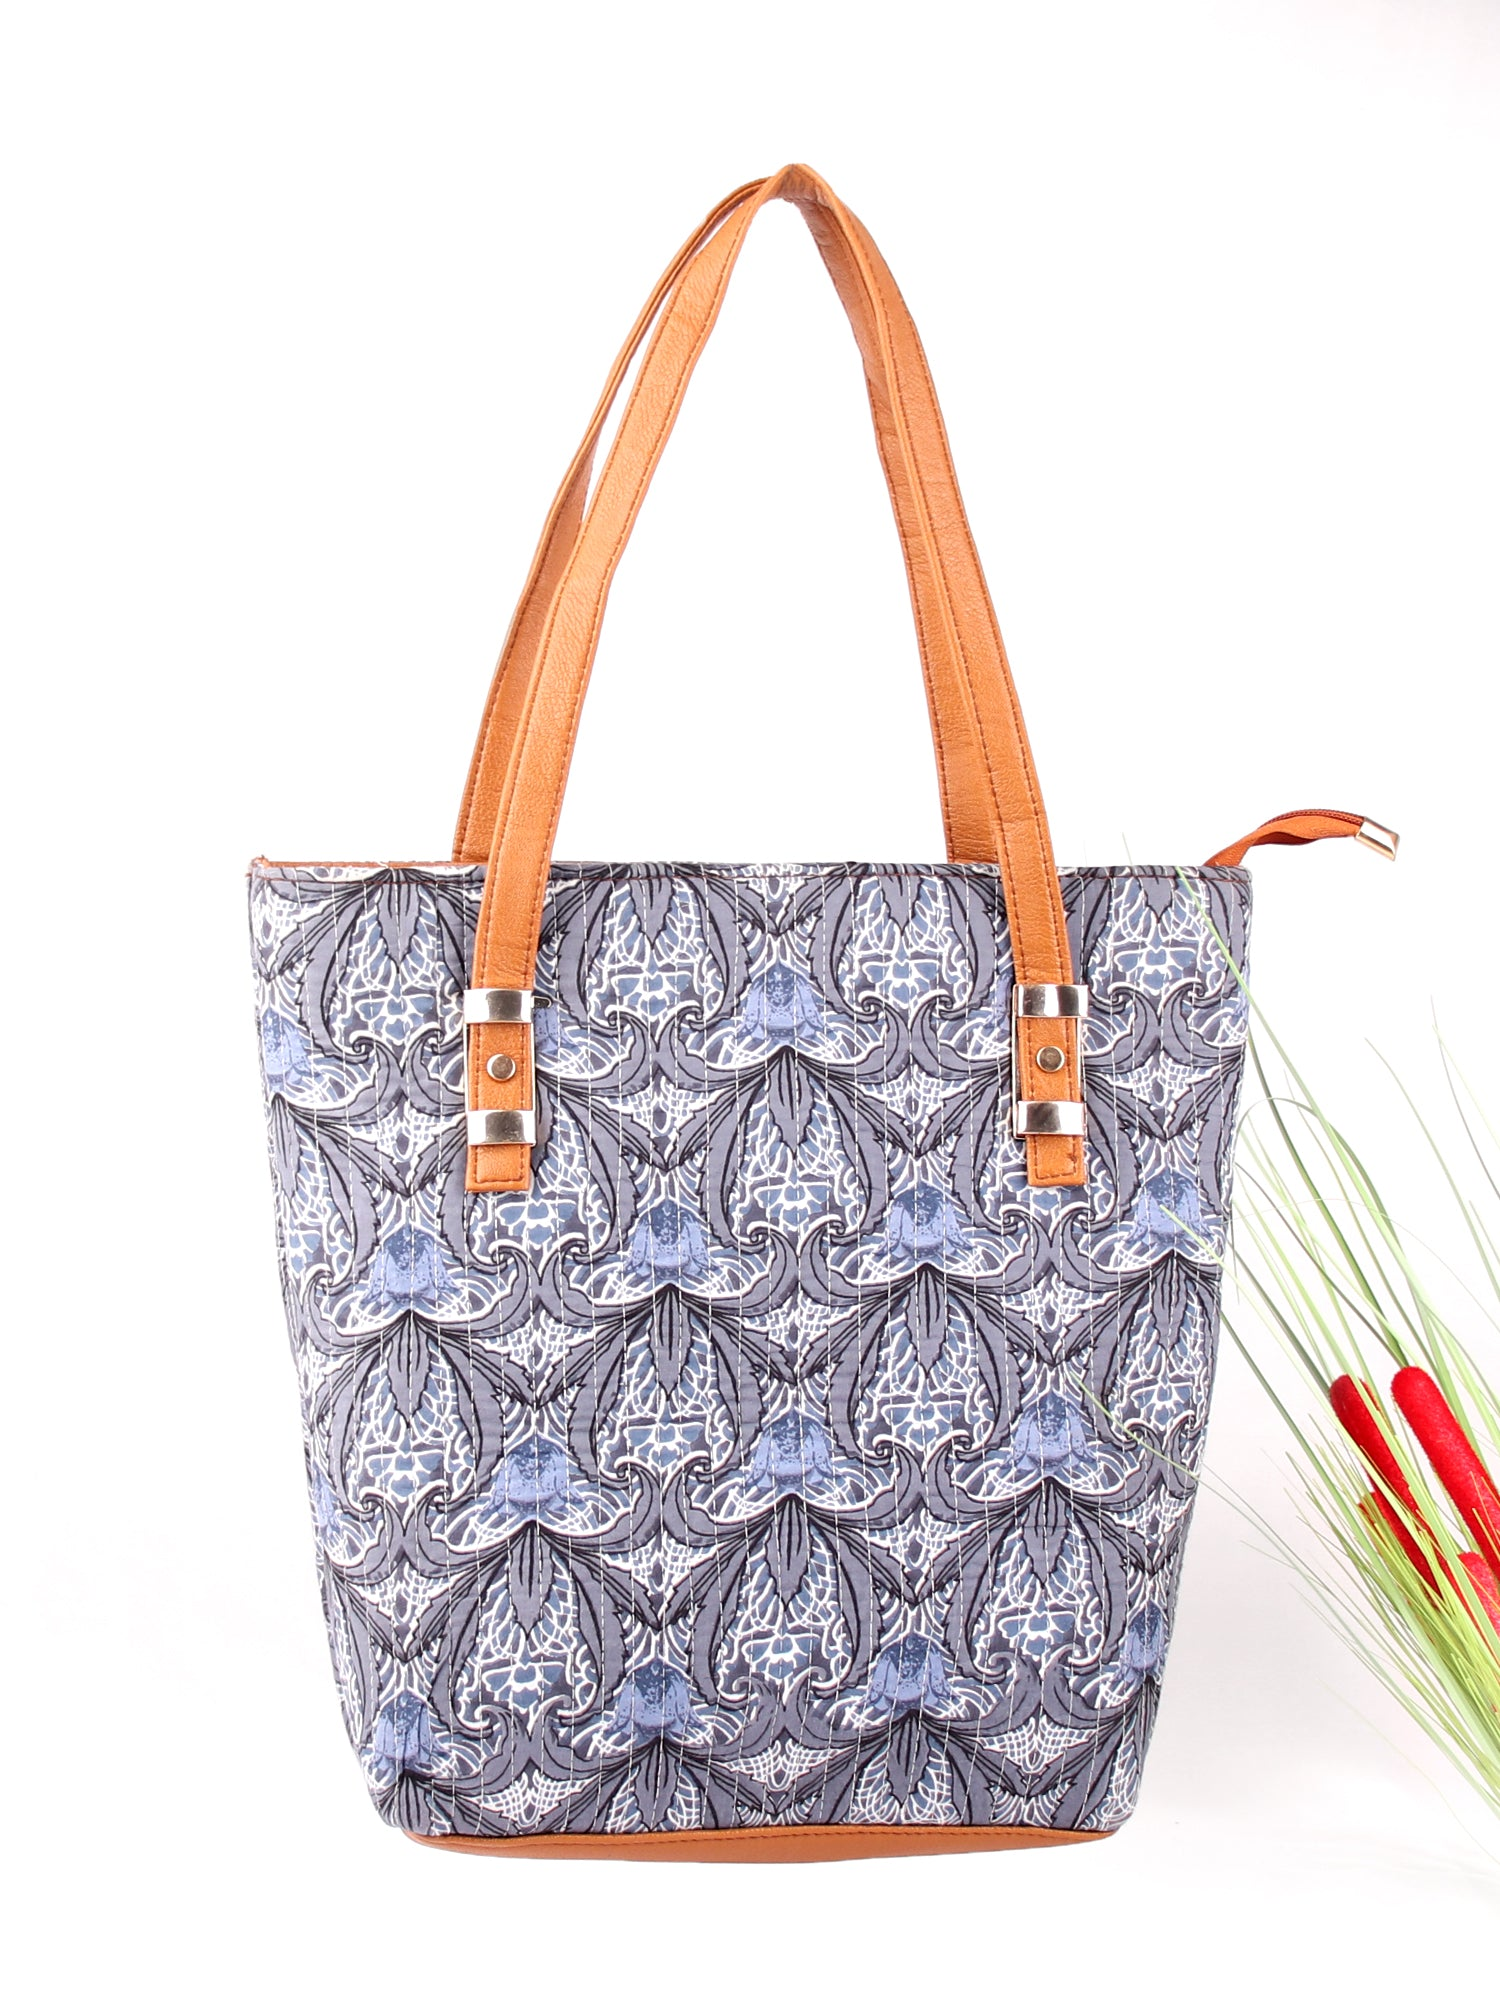 ABSTRACT PRINT TOTEBAG